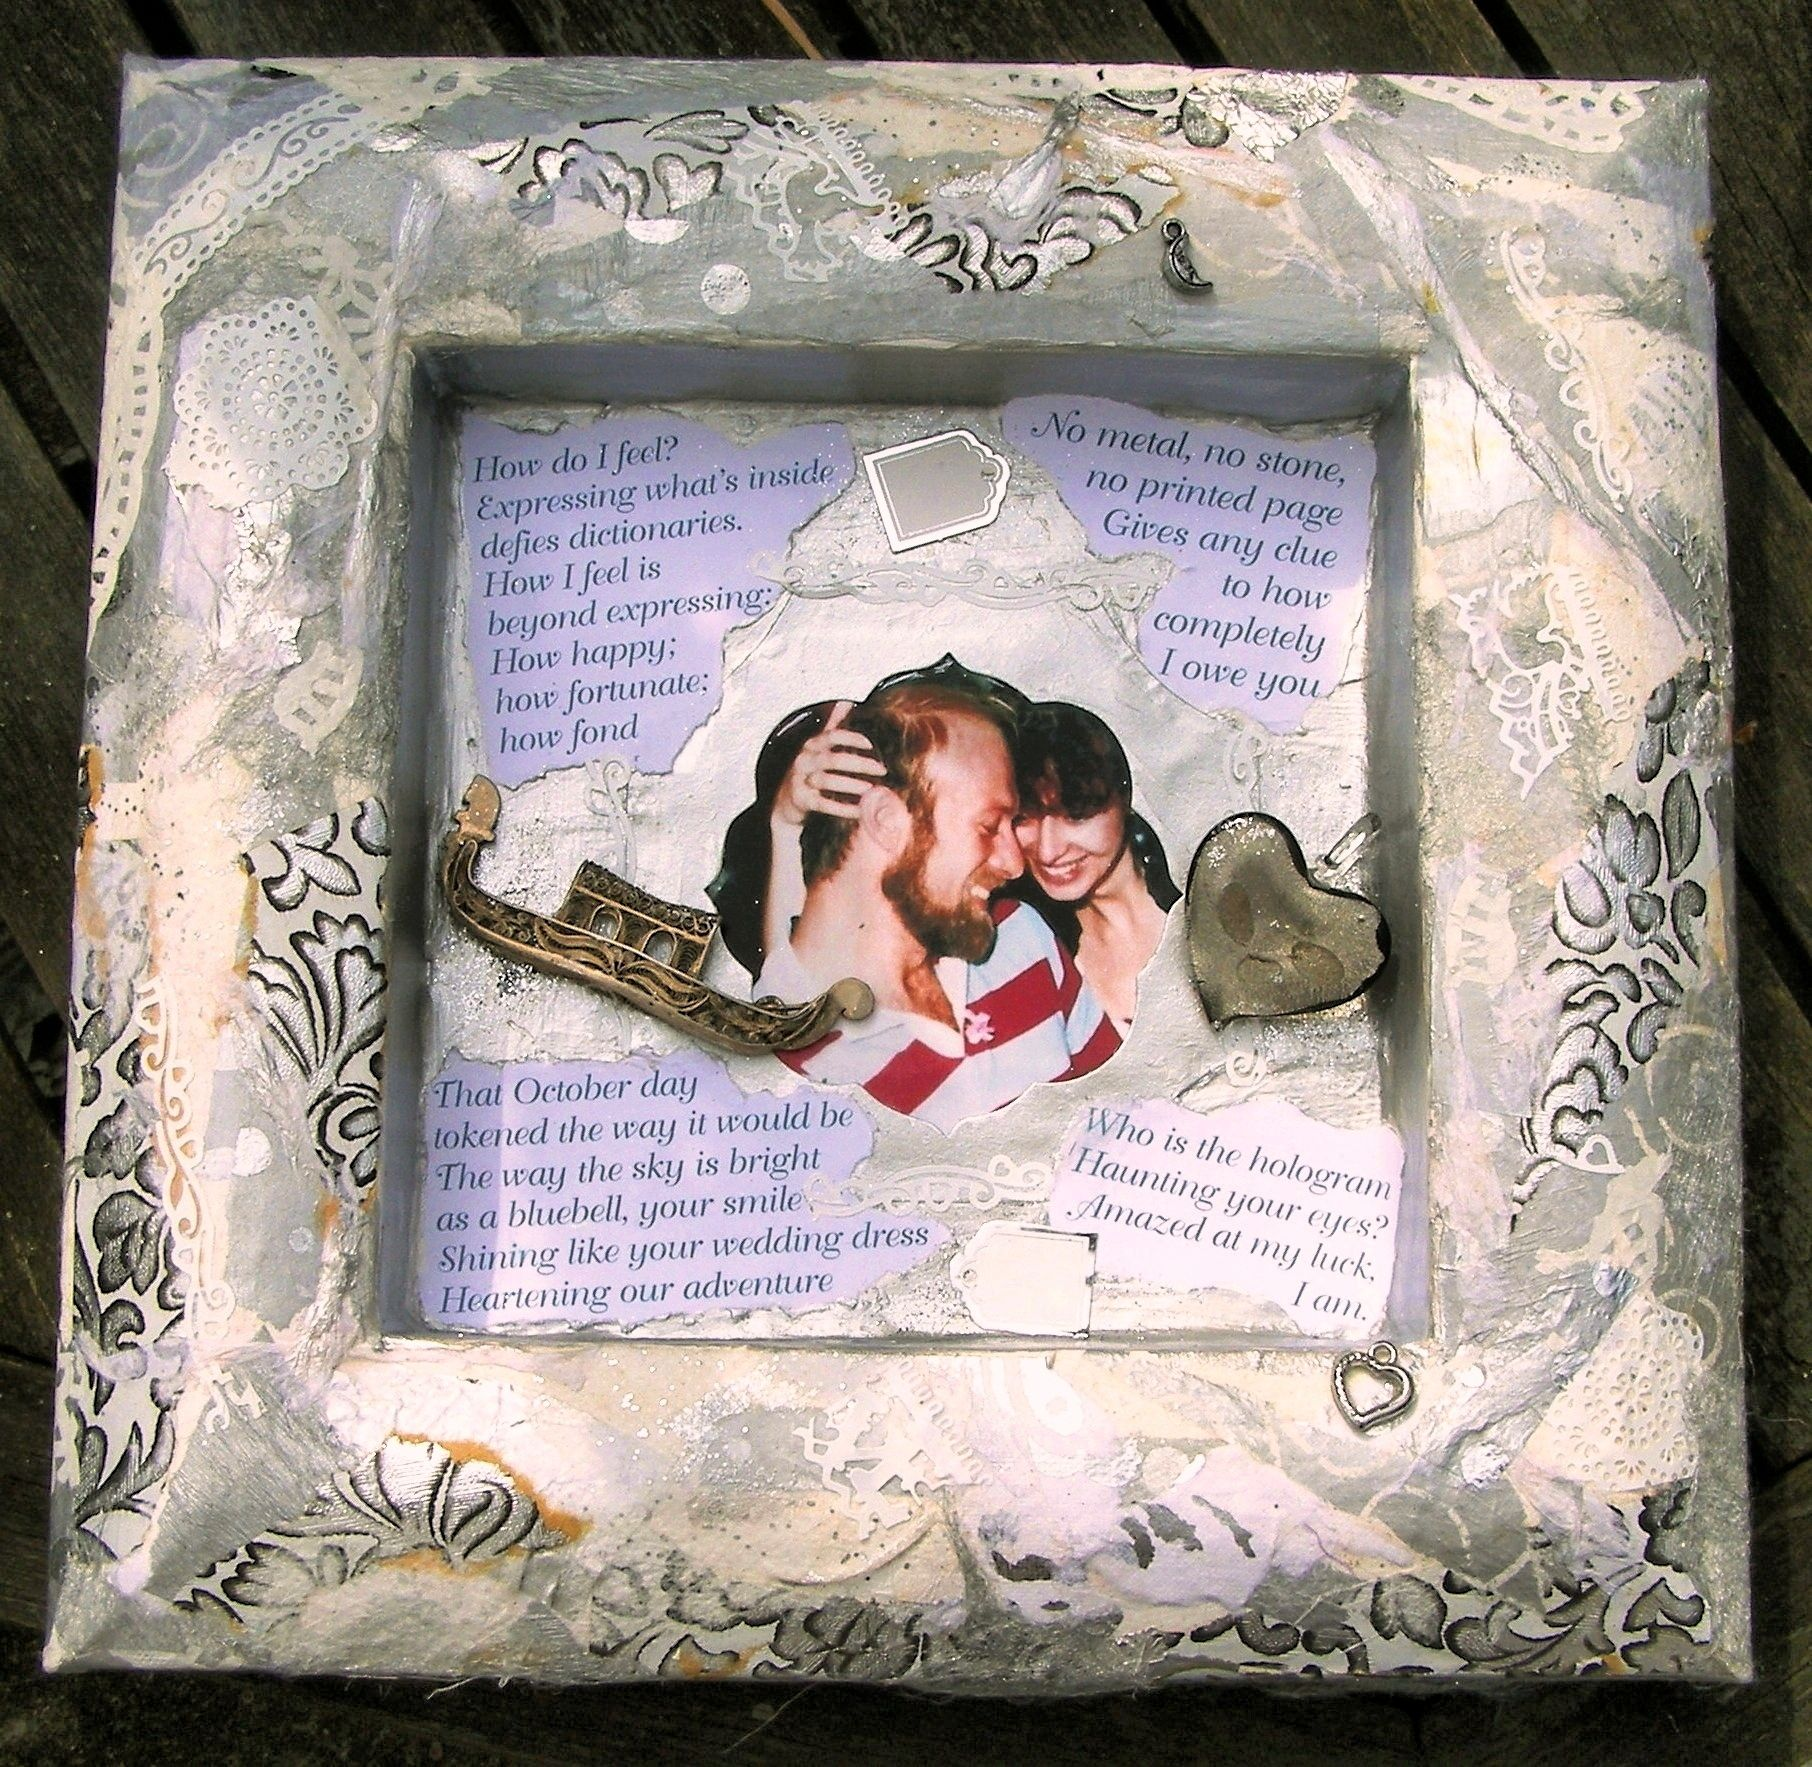 Personalised shadow box from www.driftwood-dreams.co.uk